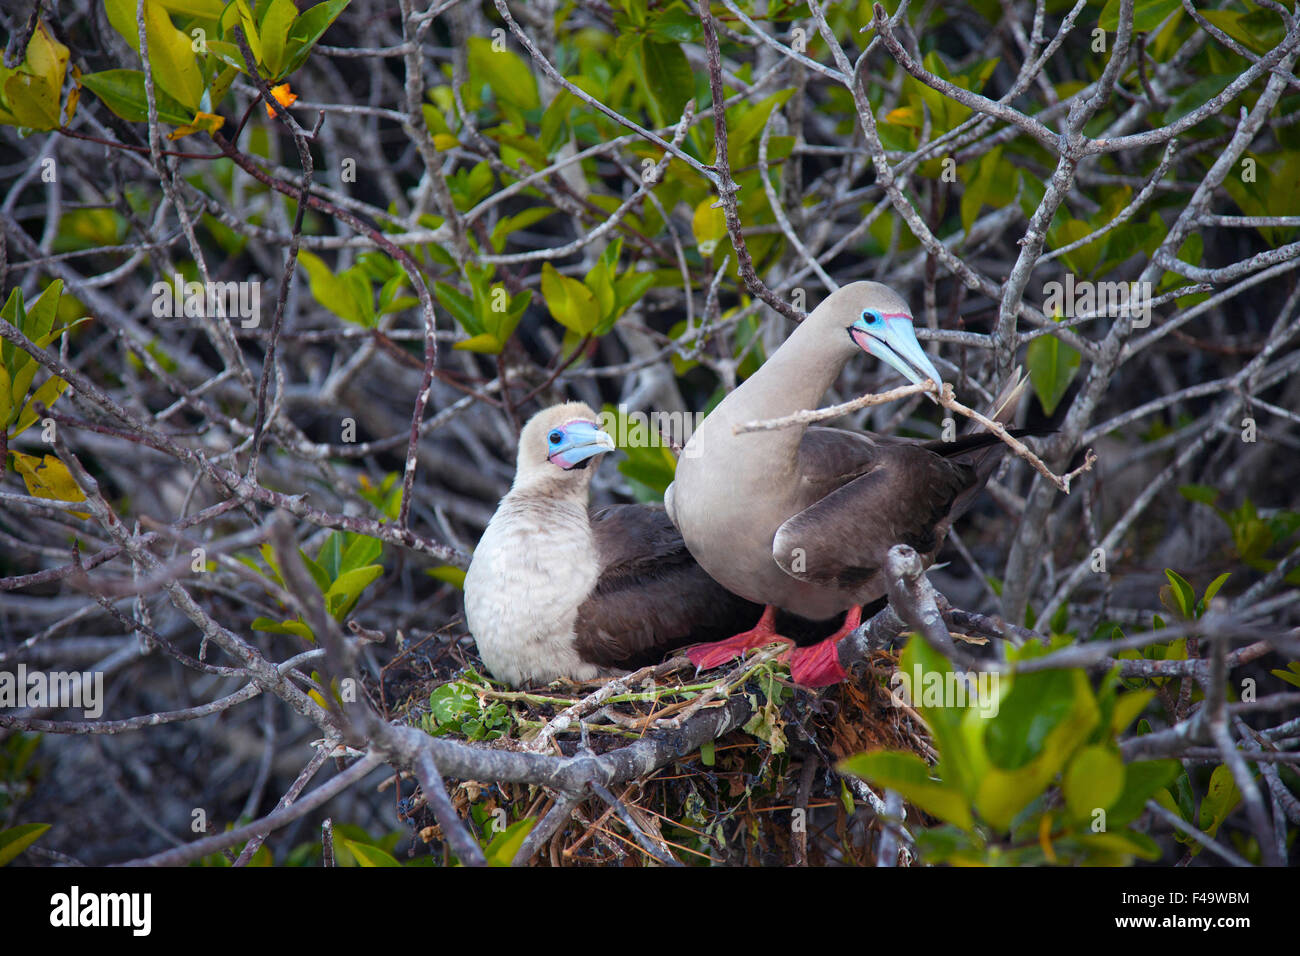 Red-footed Booby (Sula sula) pair building nest in mangrove tree, brown morph - Stock Image